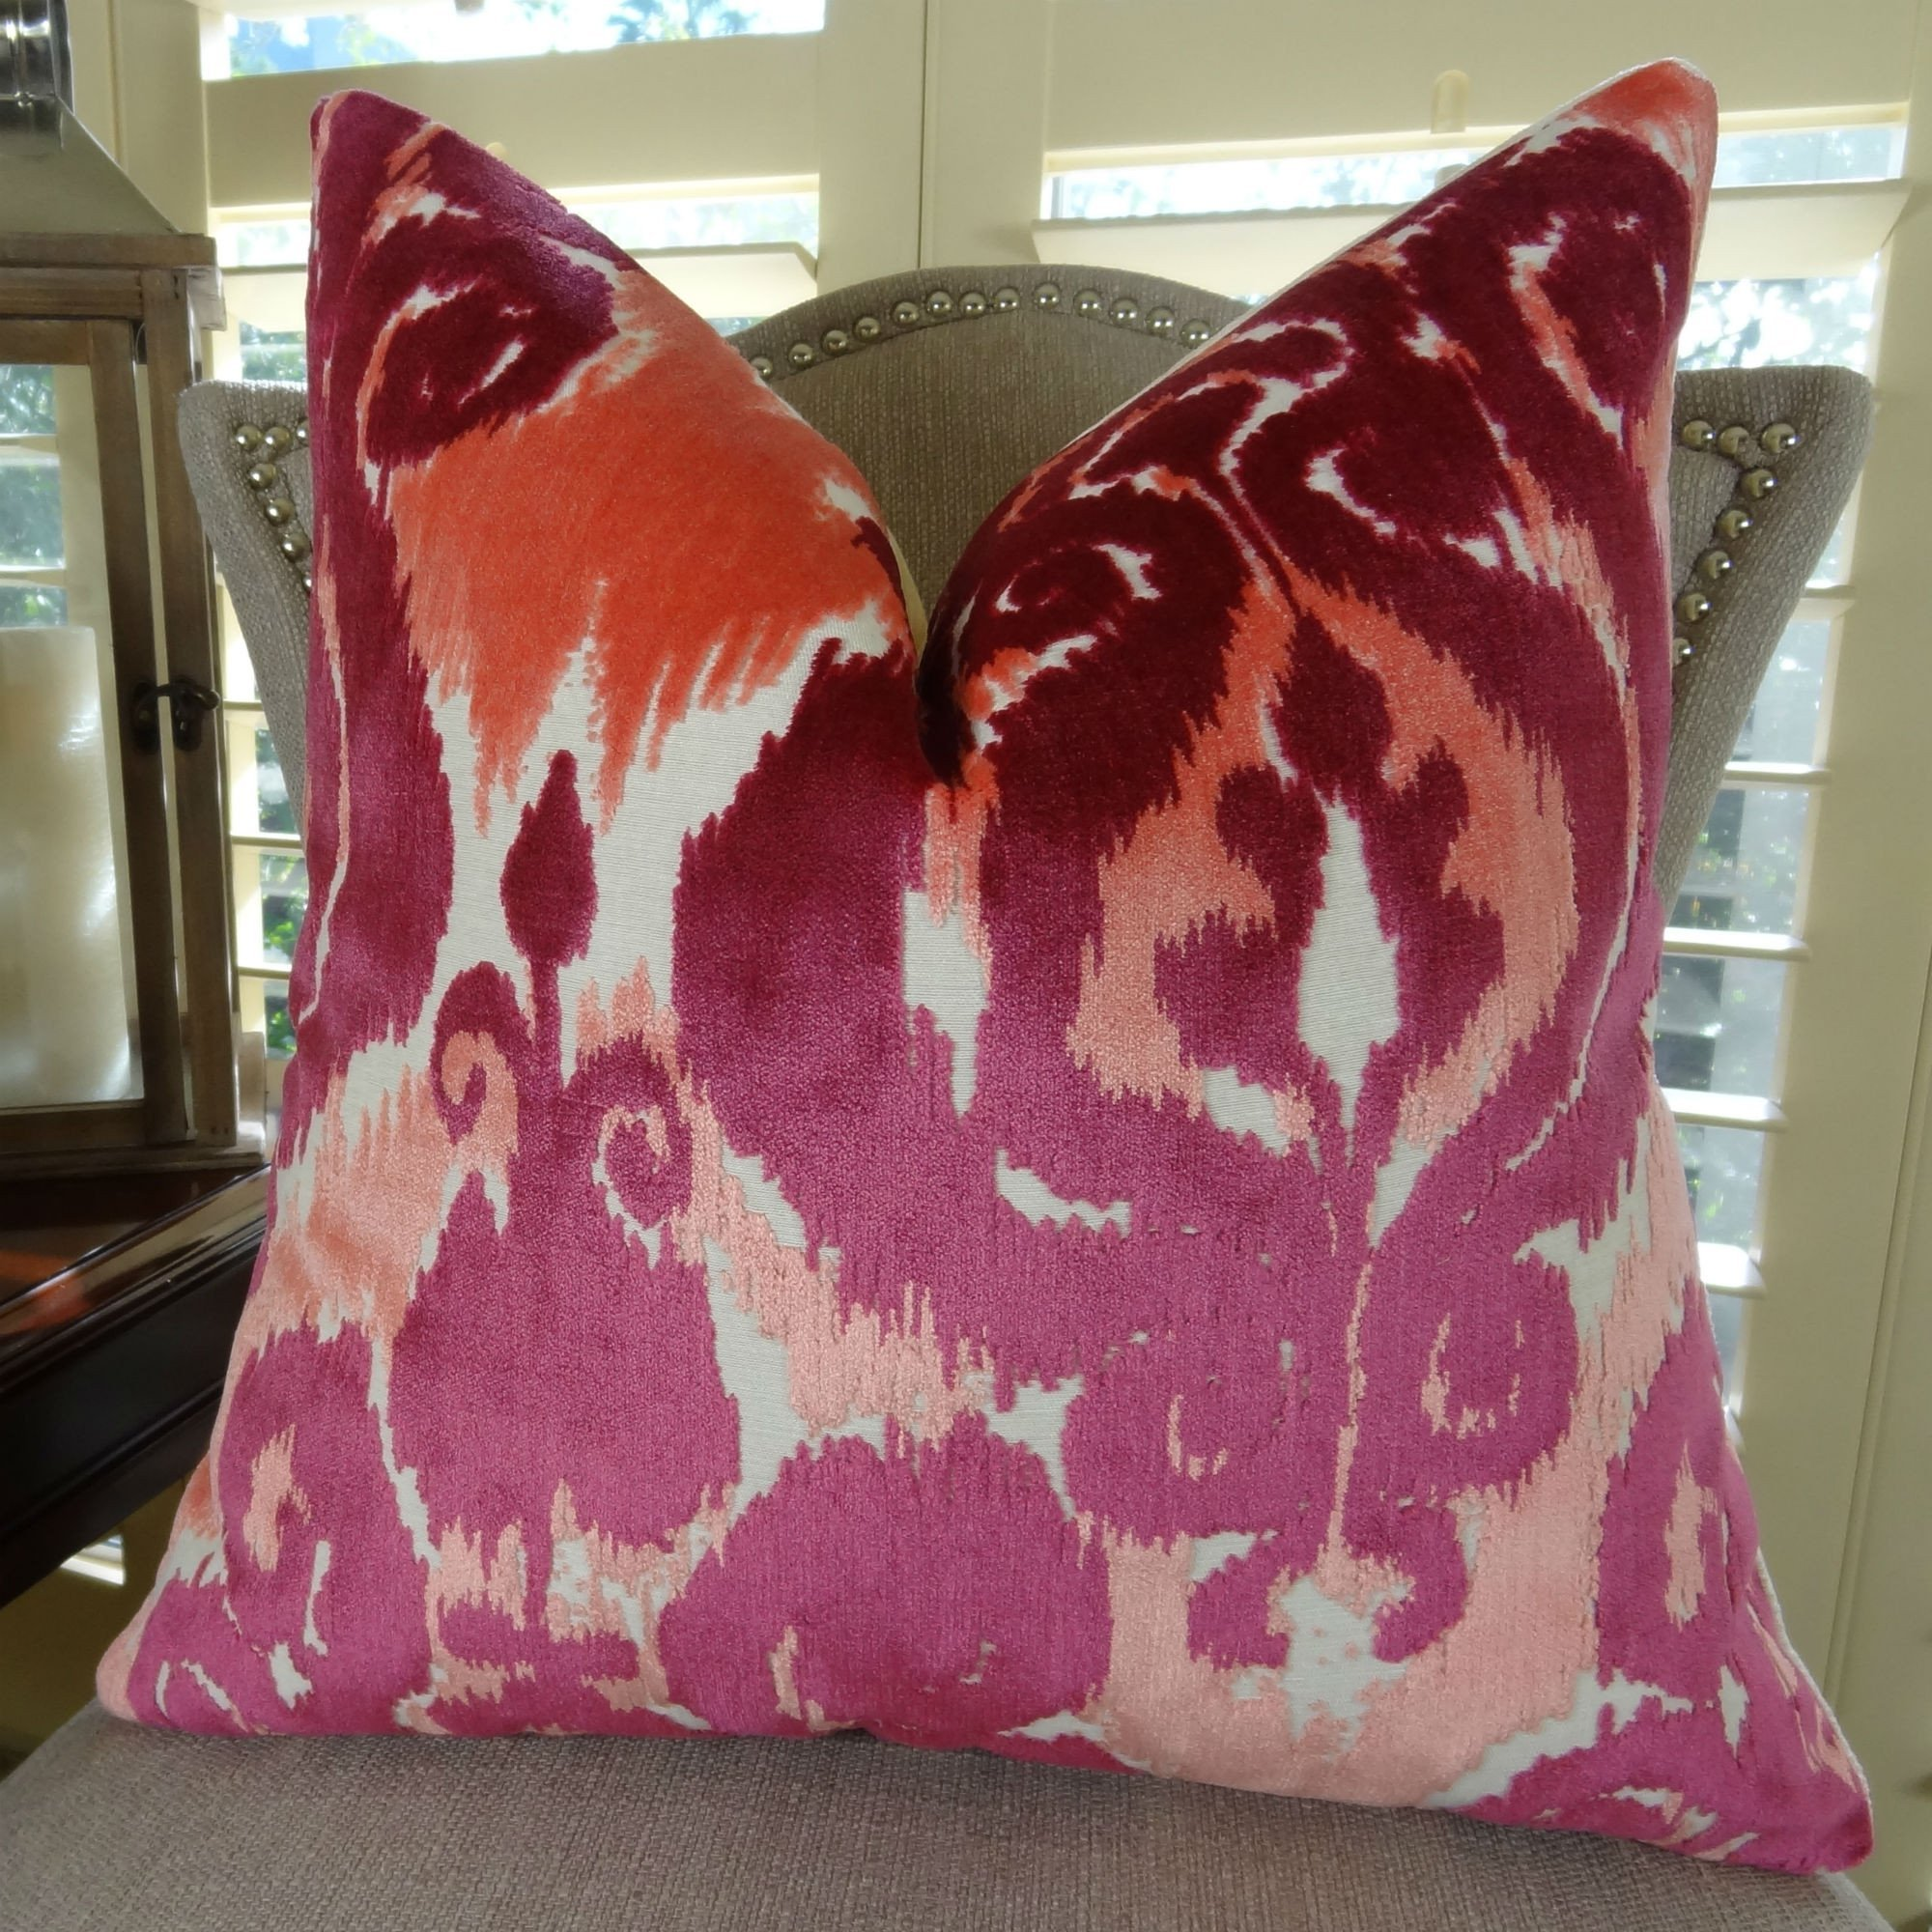 Thomas Collection fuchsia throw pillow, velvet couch pillows, Fuchsia Luxury Throw Pillow, Coral Velvet Designer Decorative Pillow, COVER ONLY, NO INSERT, Made in America, 11366